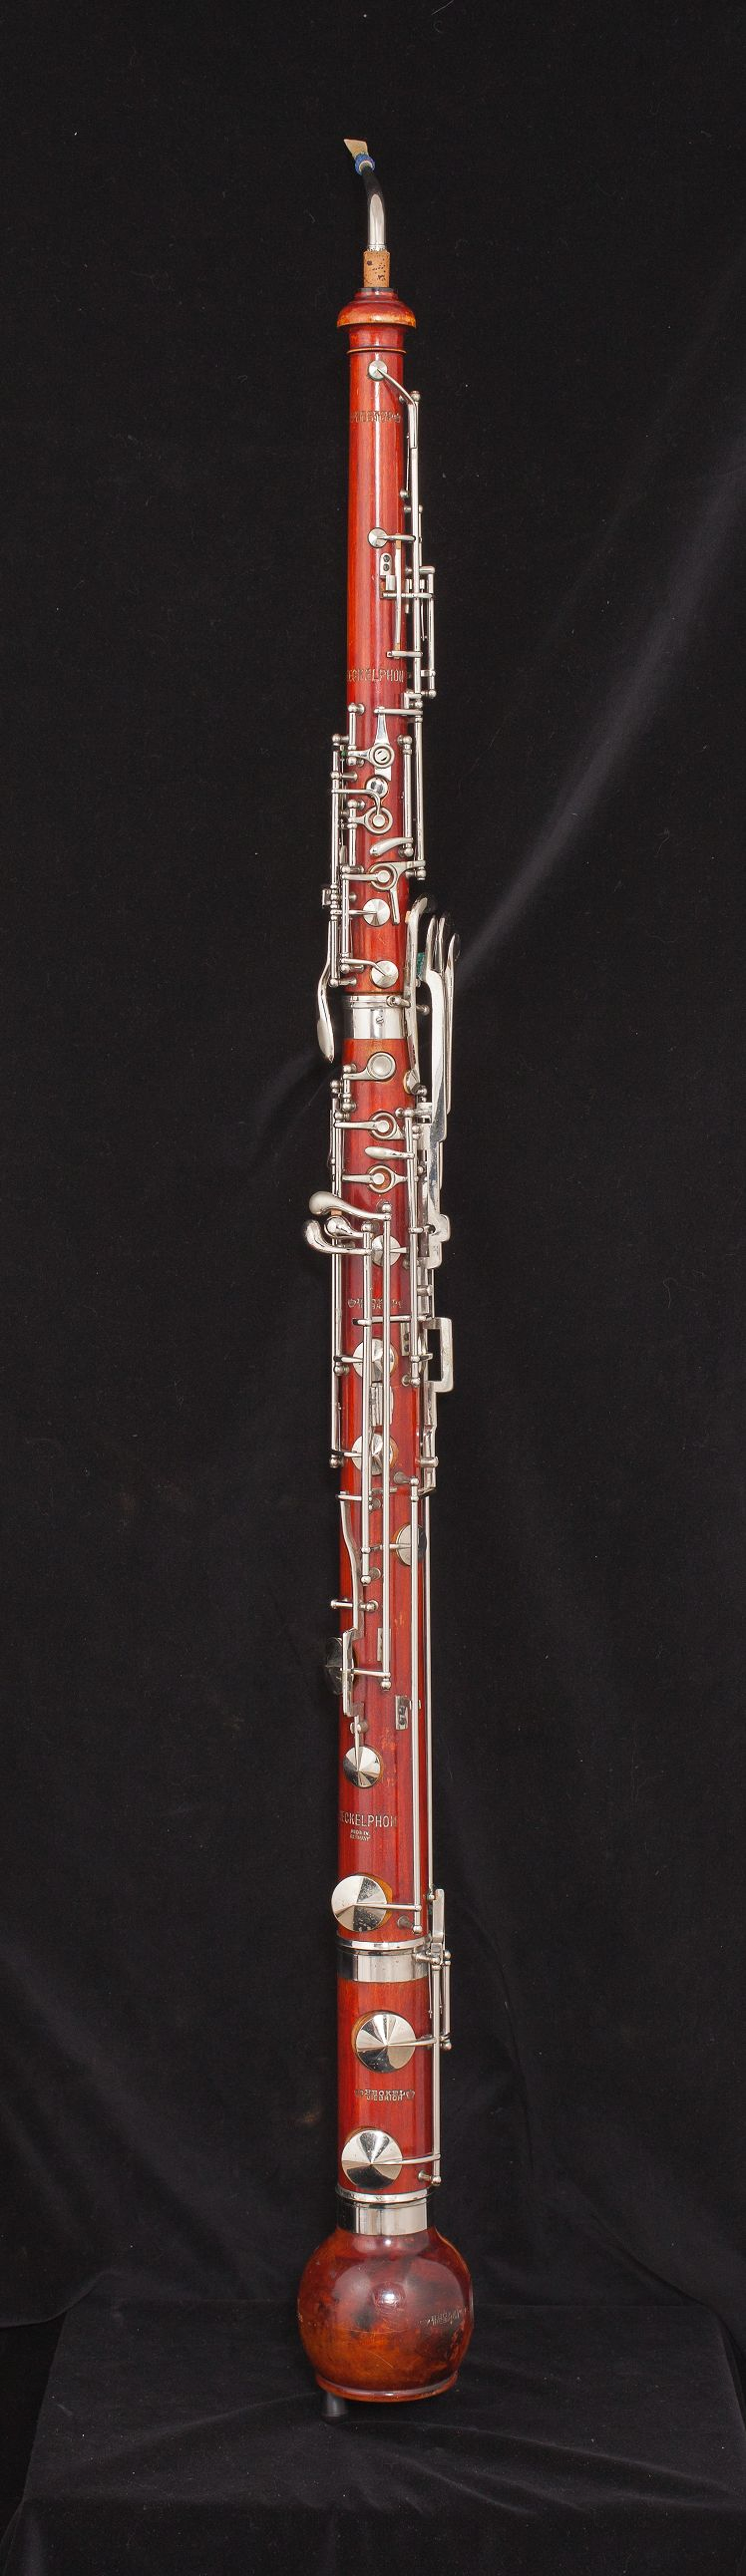 Image of a heckelphone. Double-reed instrument made of a reddish wood with metal keys.